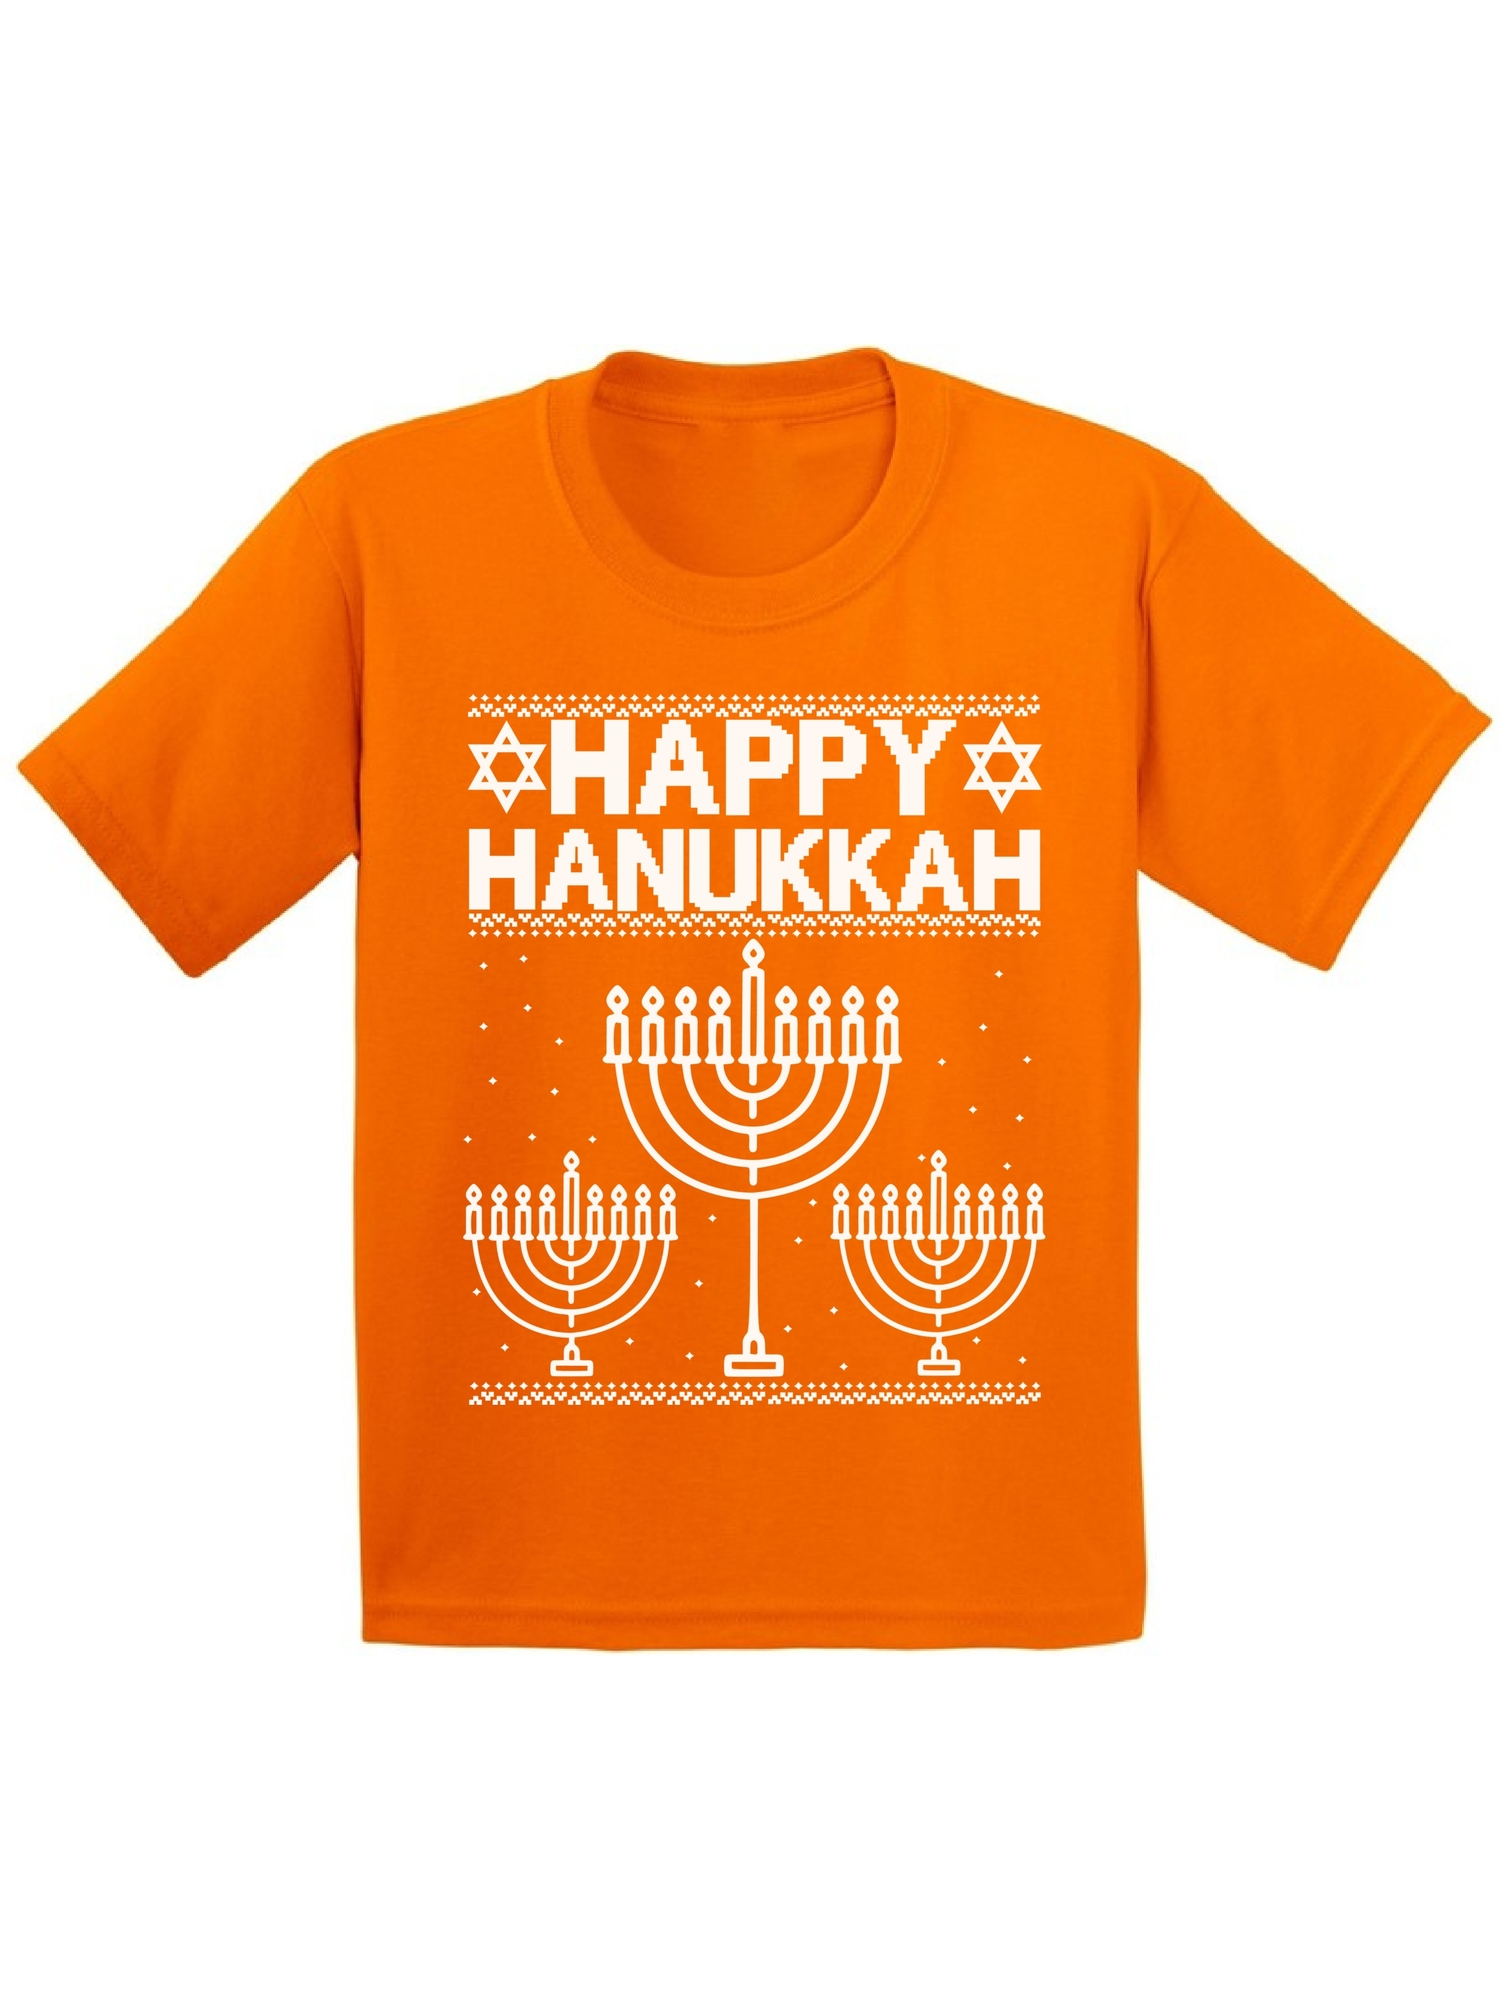 Awkward Styles Happy Hanukkah Christmas Shirts for Kids Jewish Menorah Kid's Christmas Shirt Xmas Happy Hanukkah Youth Christmas Tee Funny Kid's Christmas Holiday Shirt Christmas Gifts for Kids